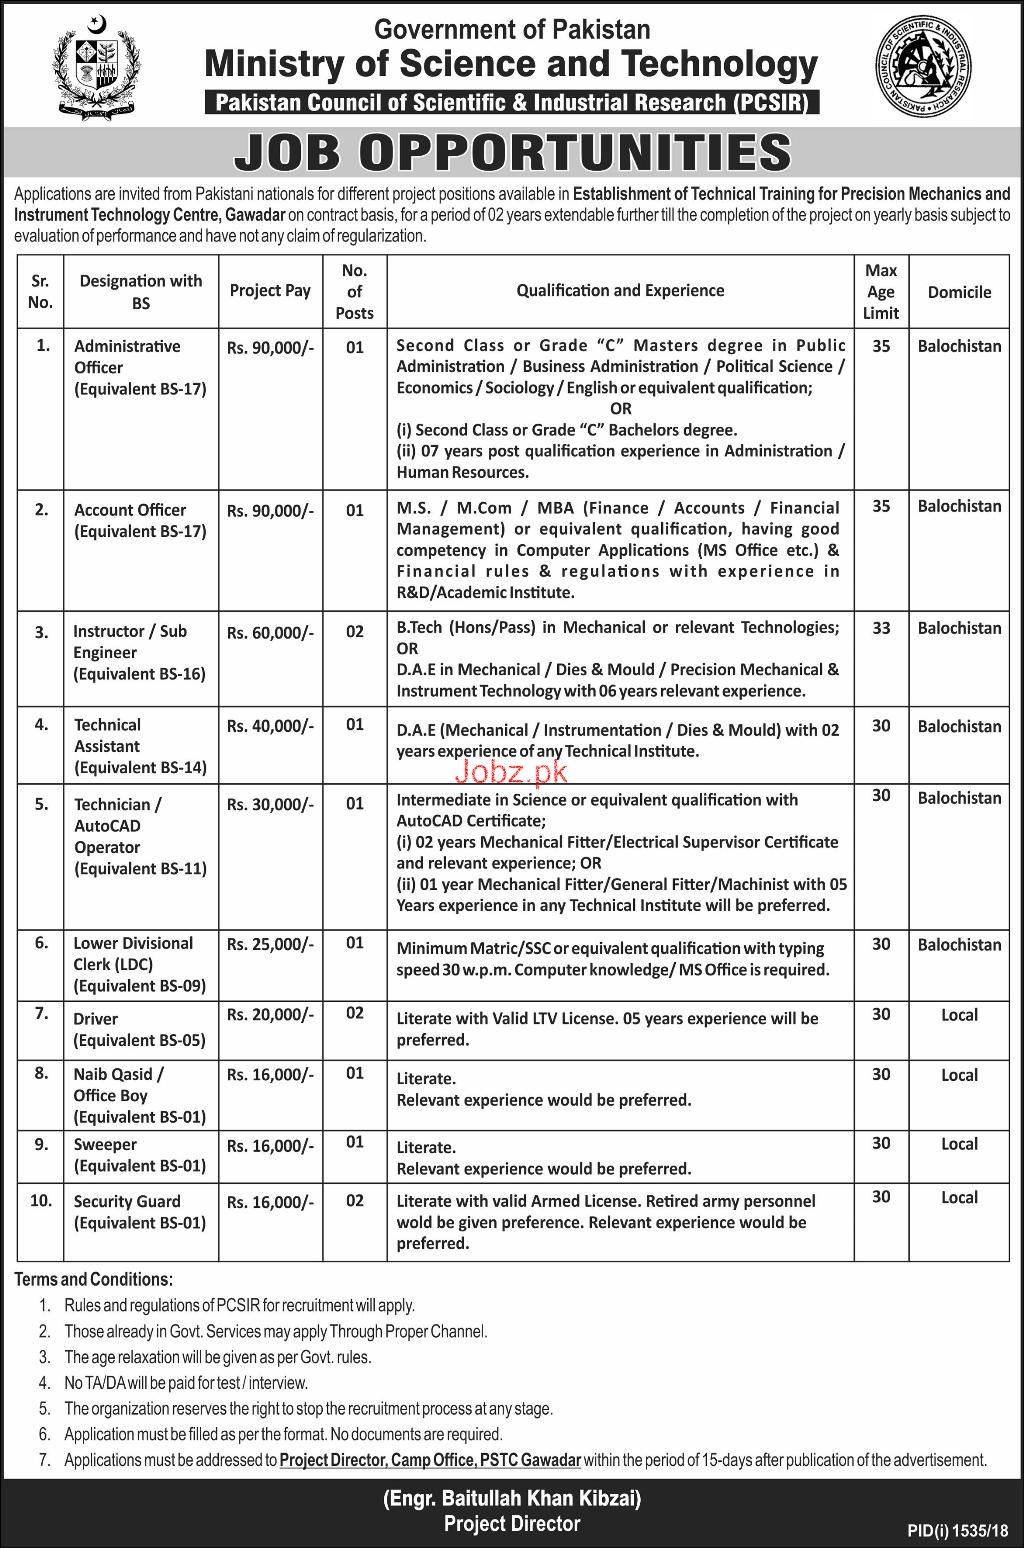 Ministry of Science and Technology MOST Jobs 2018